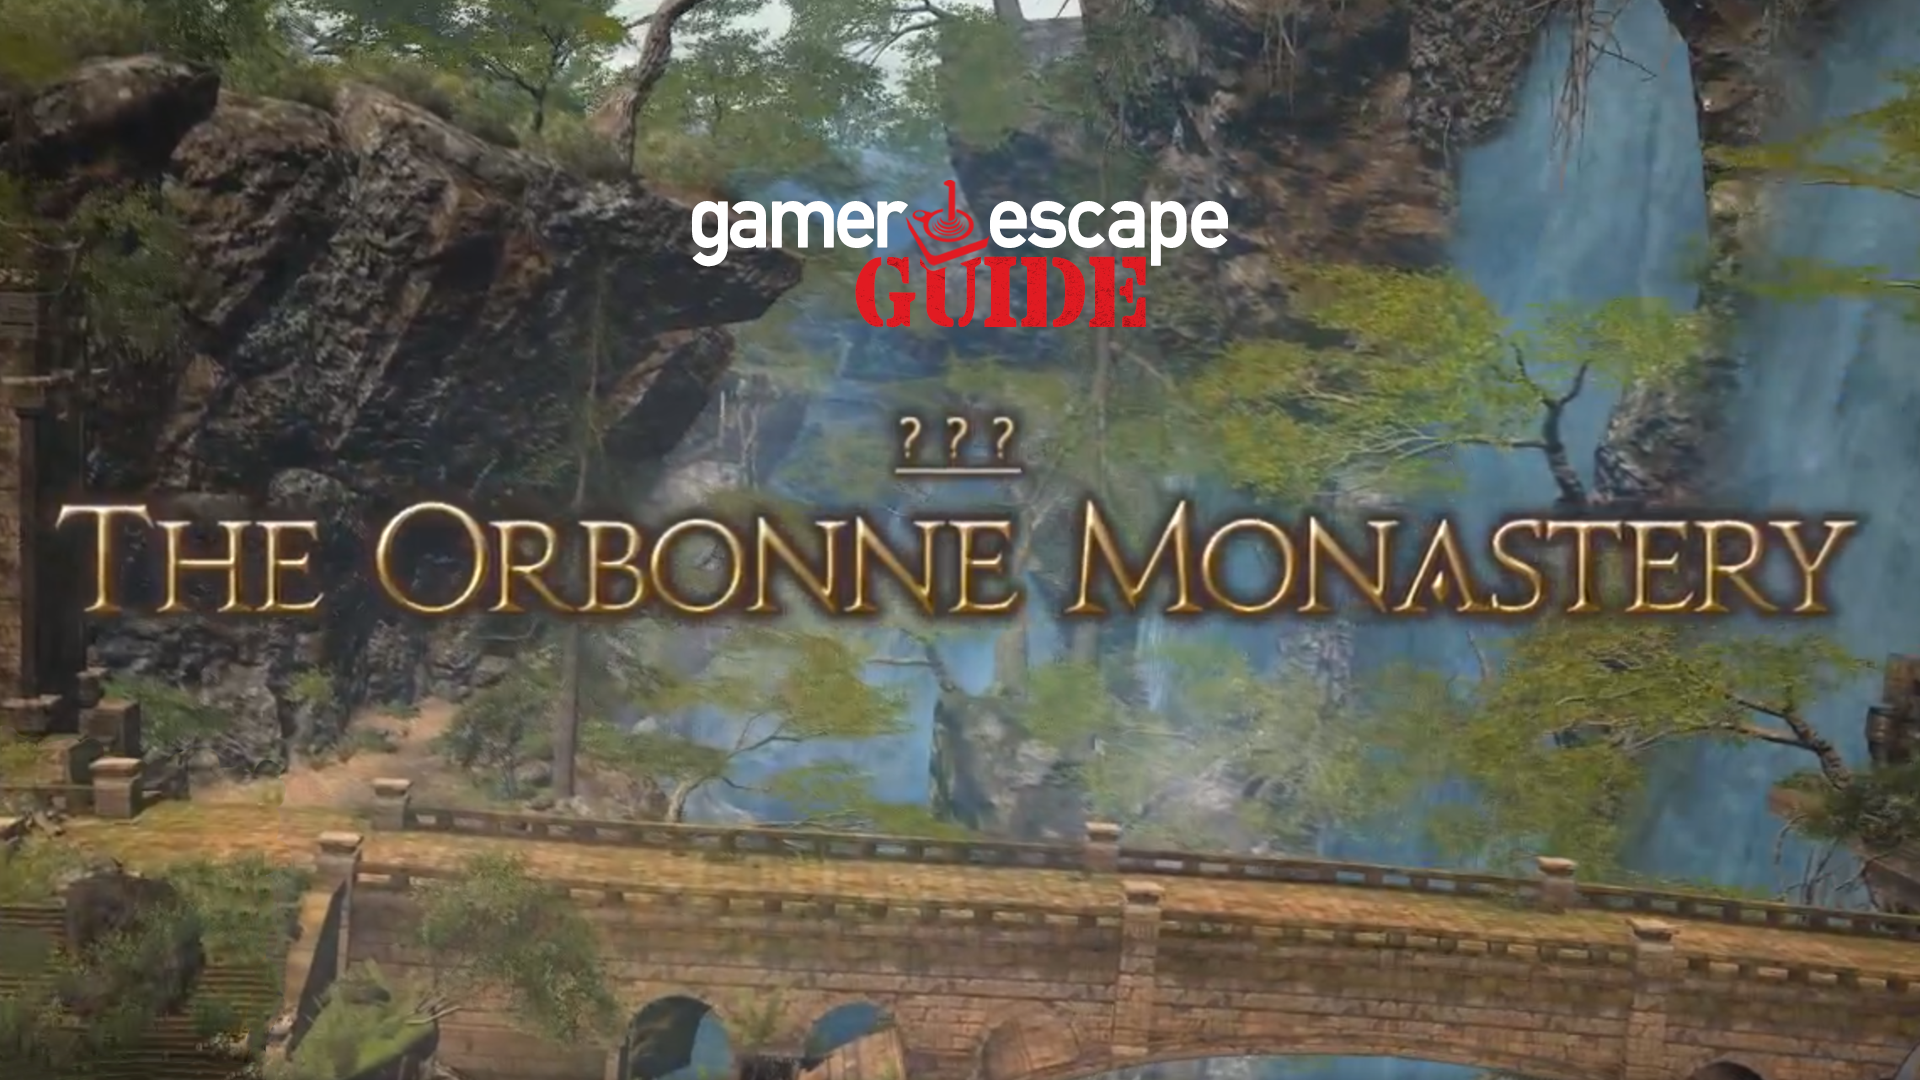 FFXIV Guide: The Orbonne Monastery – Gamer Escape: Gaming